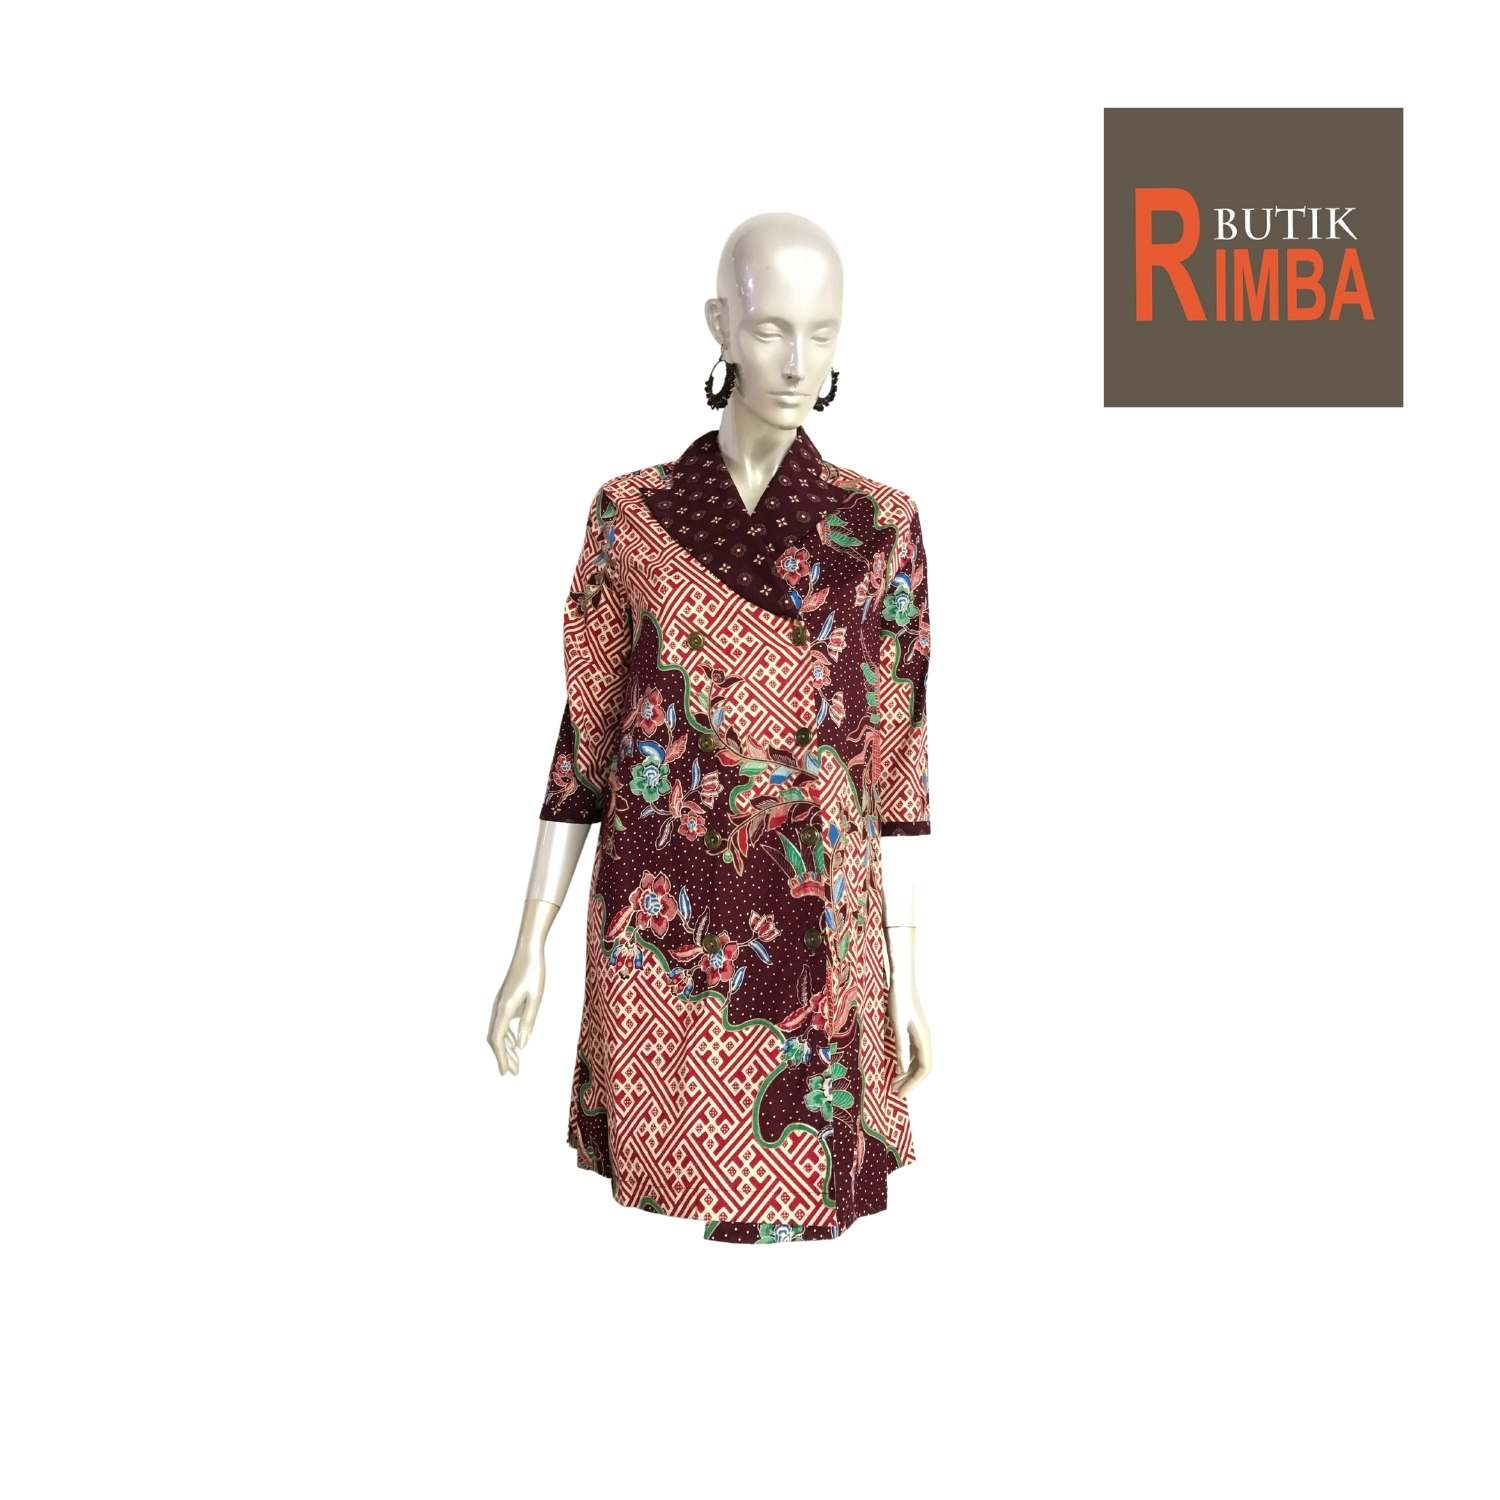 MODERN DRESS BATIK COTTON STRETCHABLE KNEE LENGTH FREE SIZE FOR FASHIONABLE WOMEN IN MIND 12